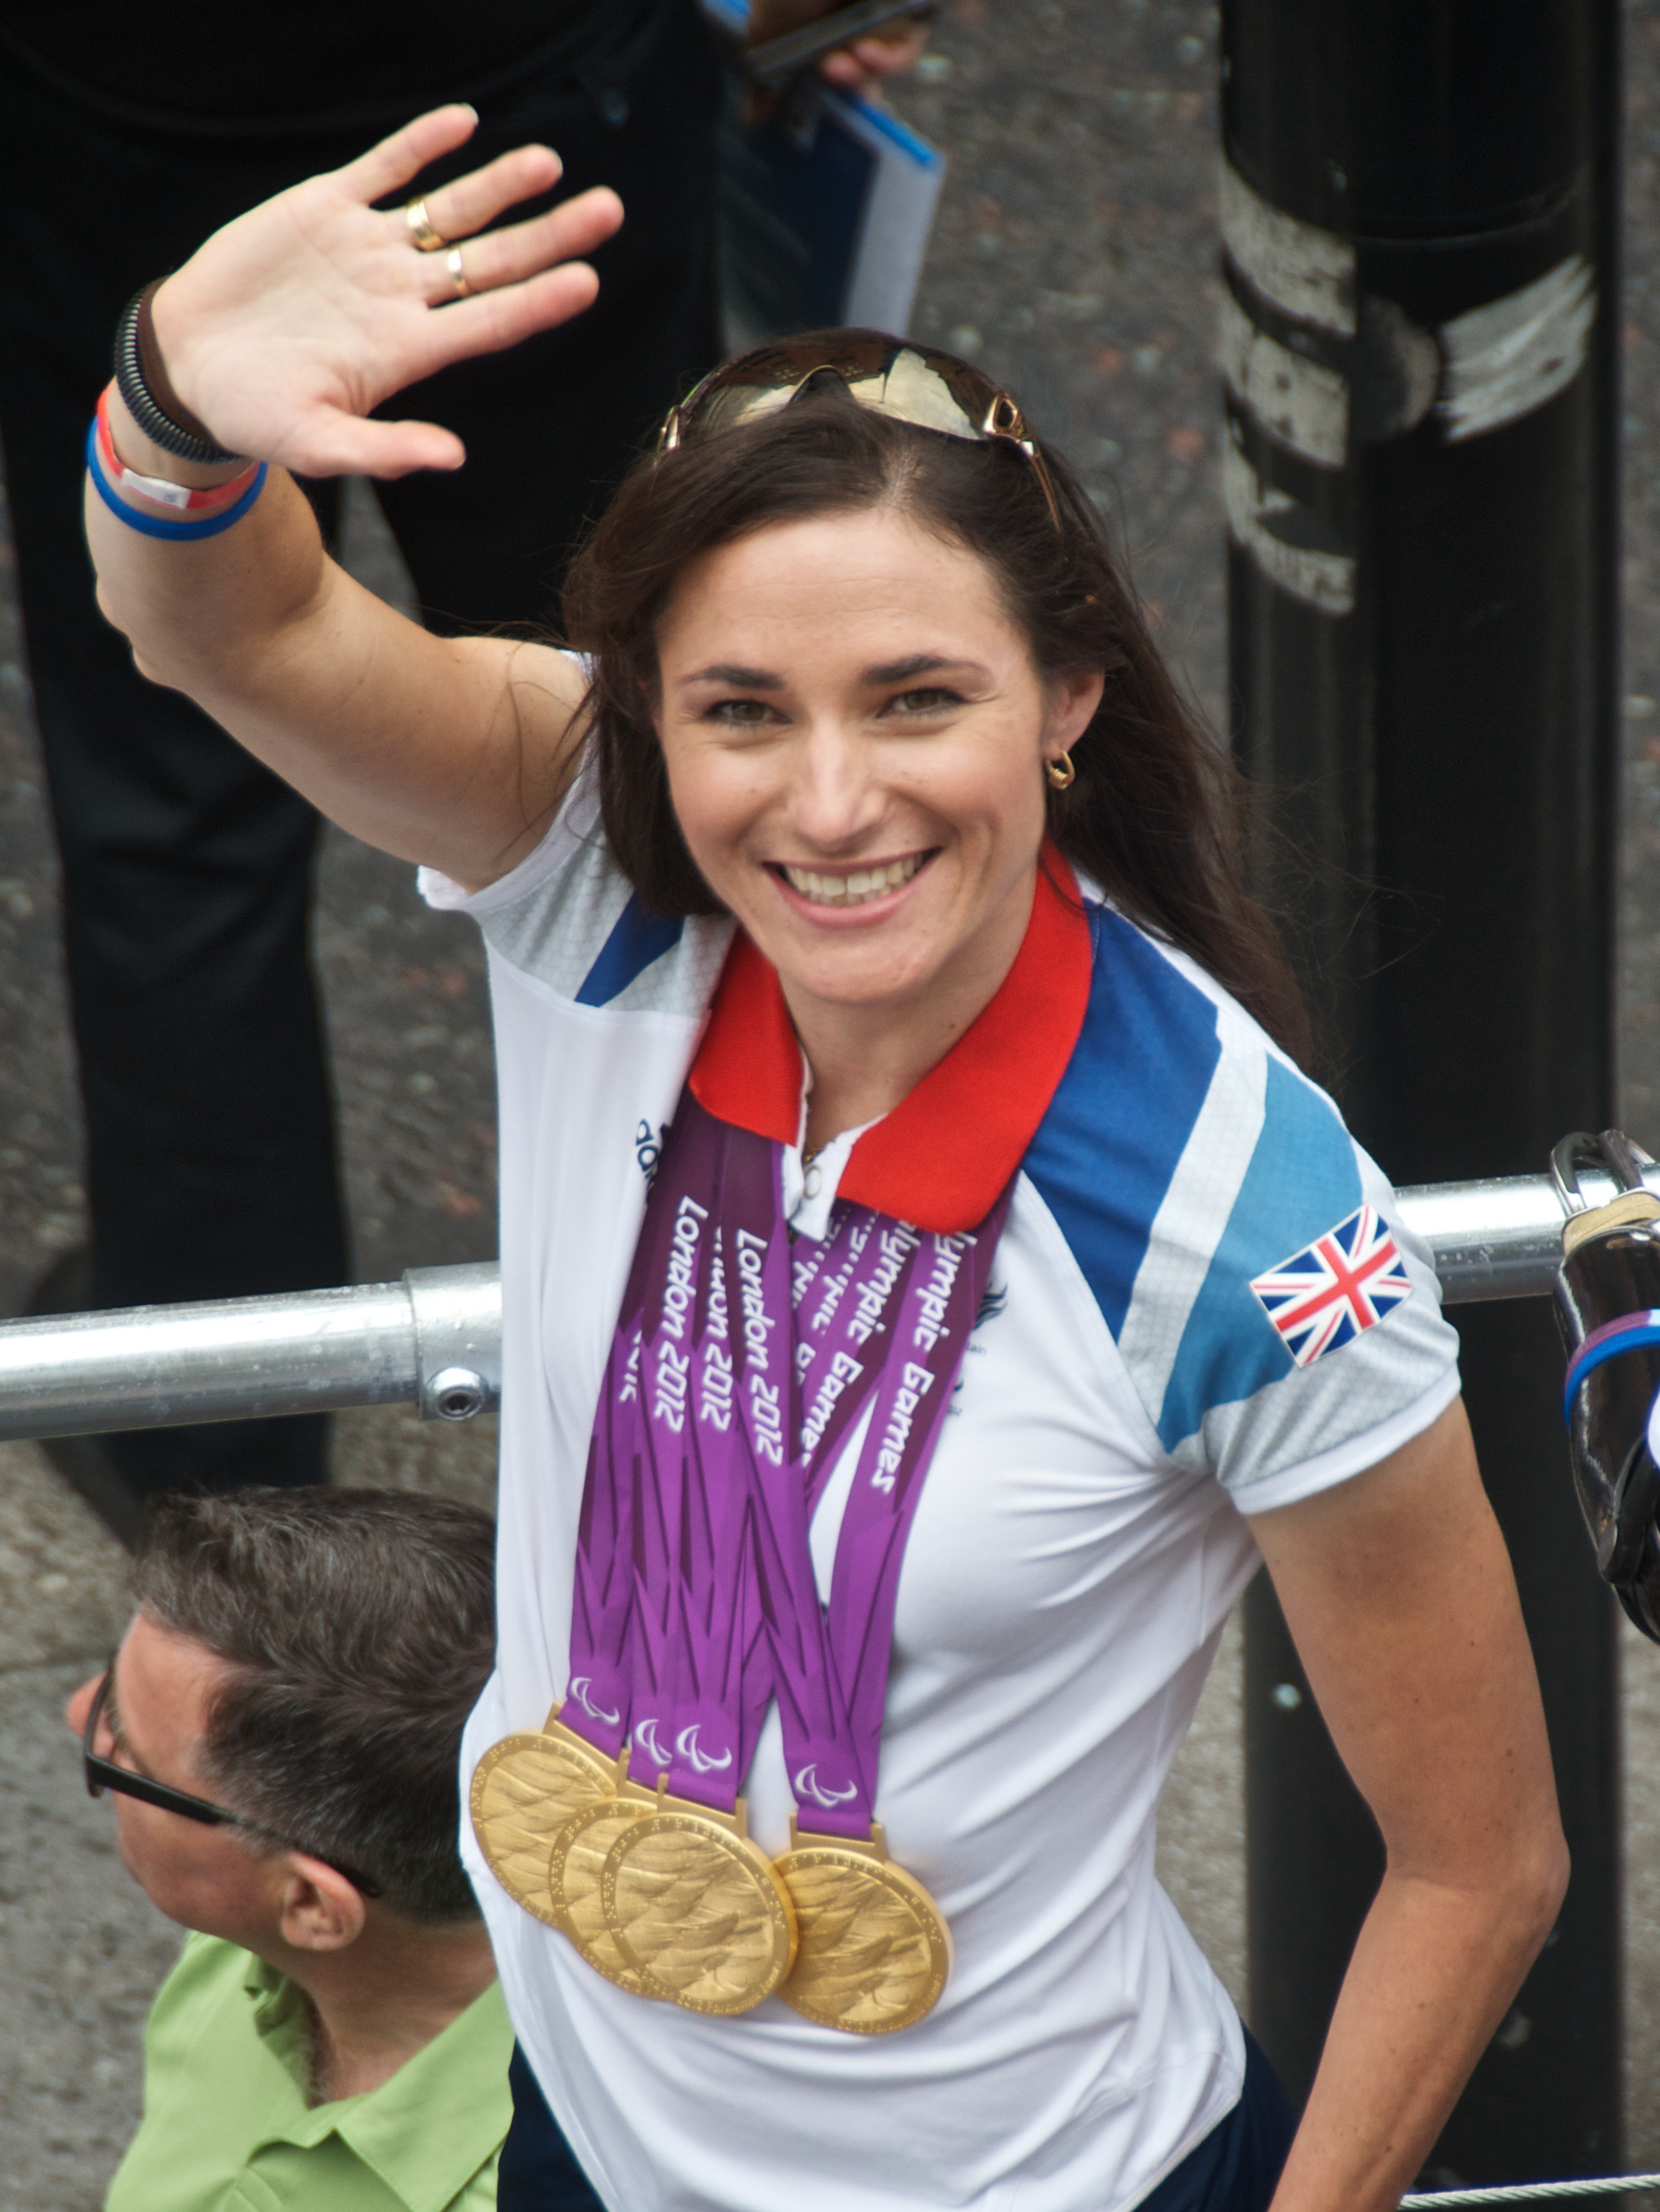 Dame Sarah Storey. Photo By Bill - Sarah StoreyUploaded by Kafuffle, CC BY 2.0, https://commons.wikimedia.org/w/index.php?curid=23390376